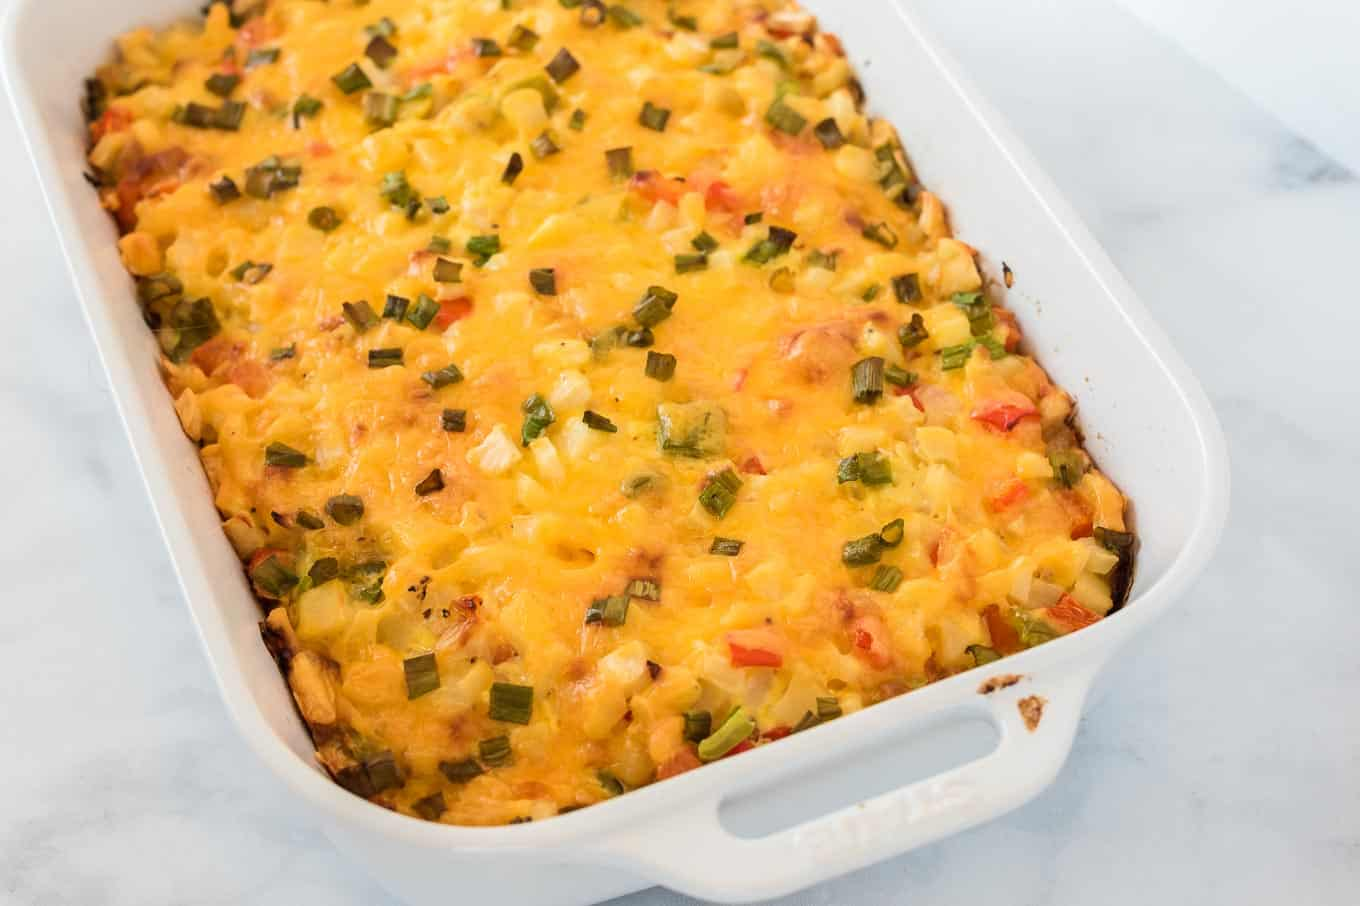 finished baked hash brown egg casserole in a white dish